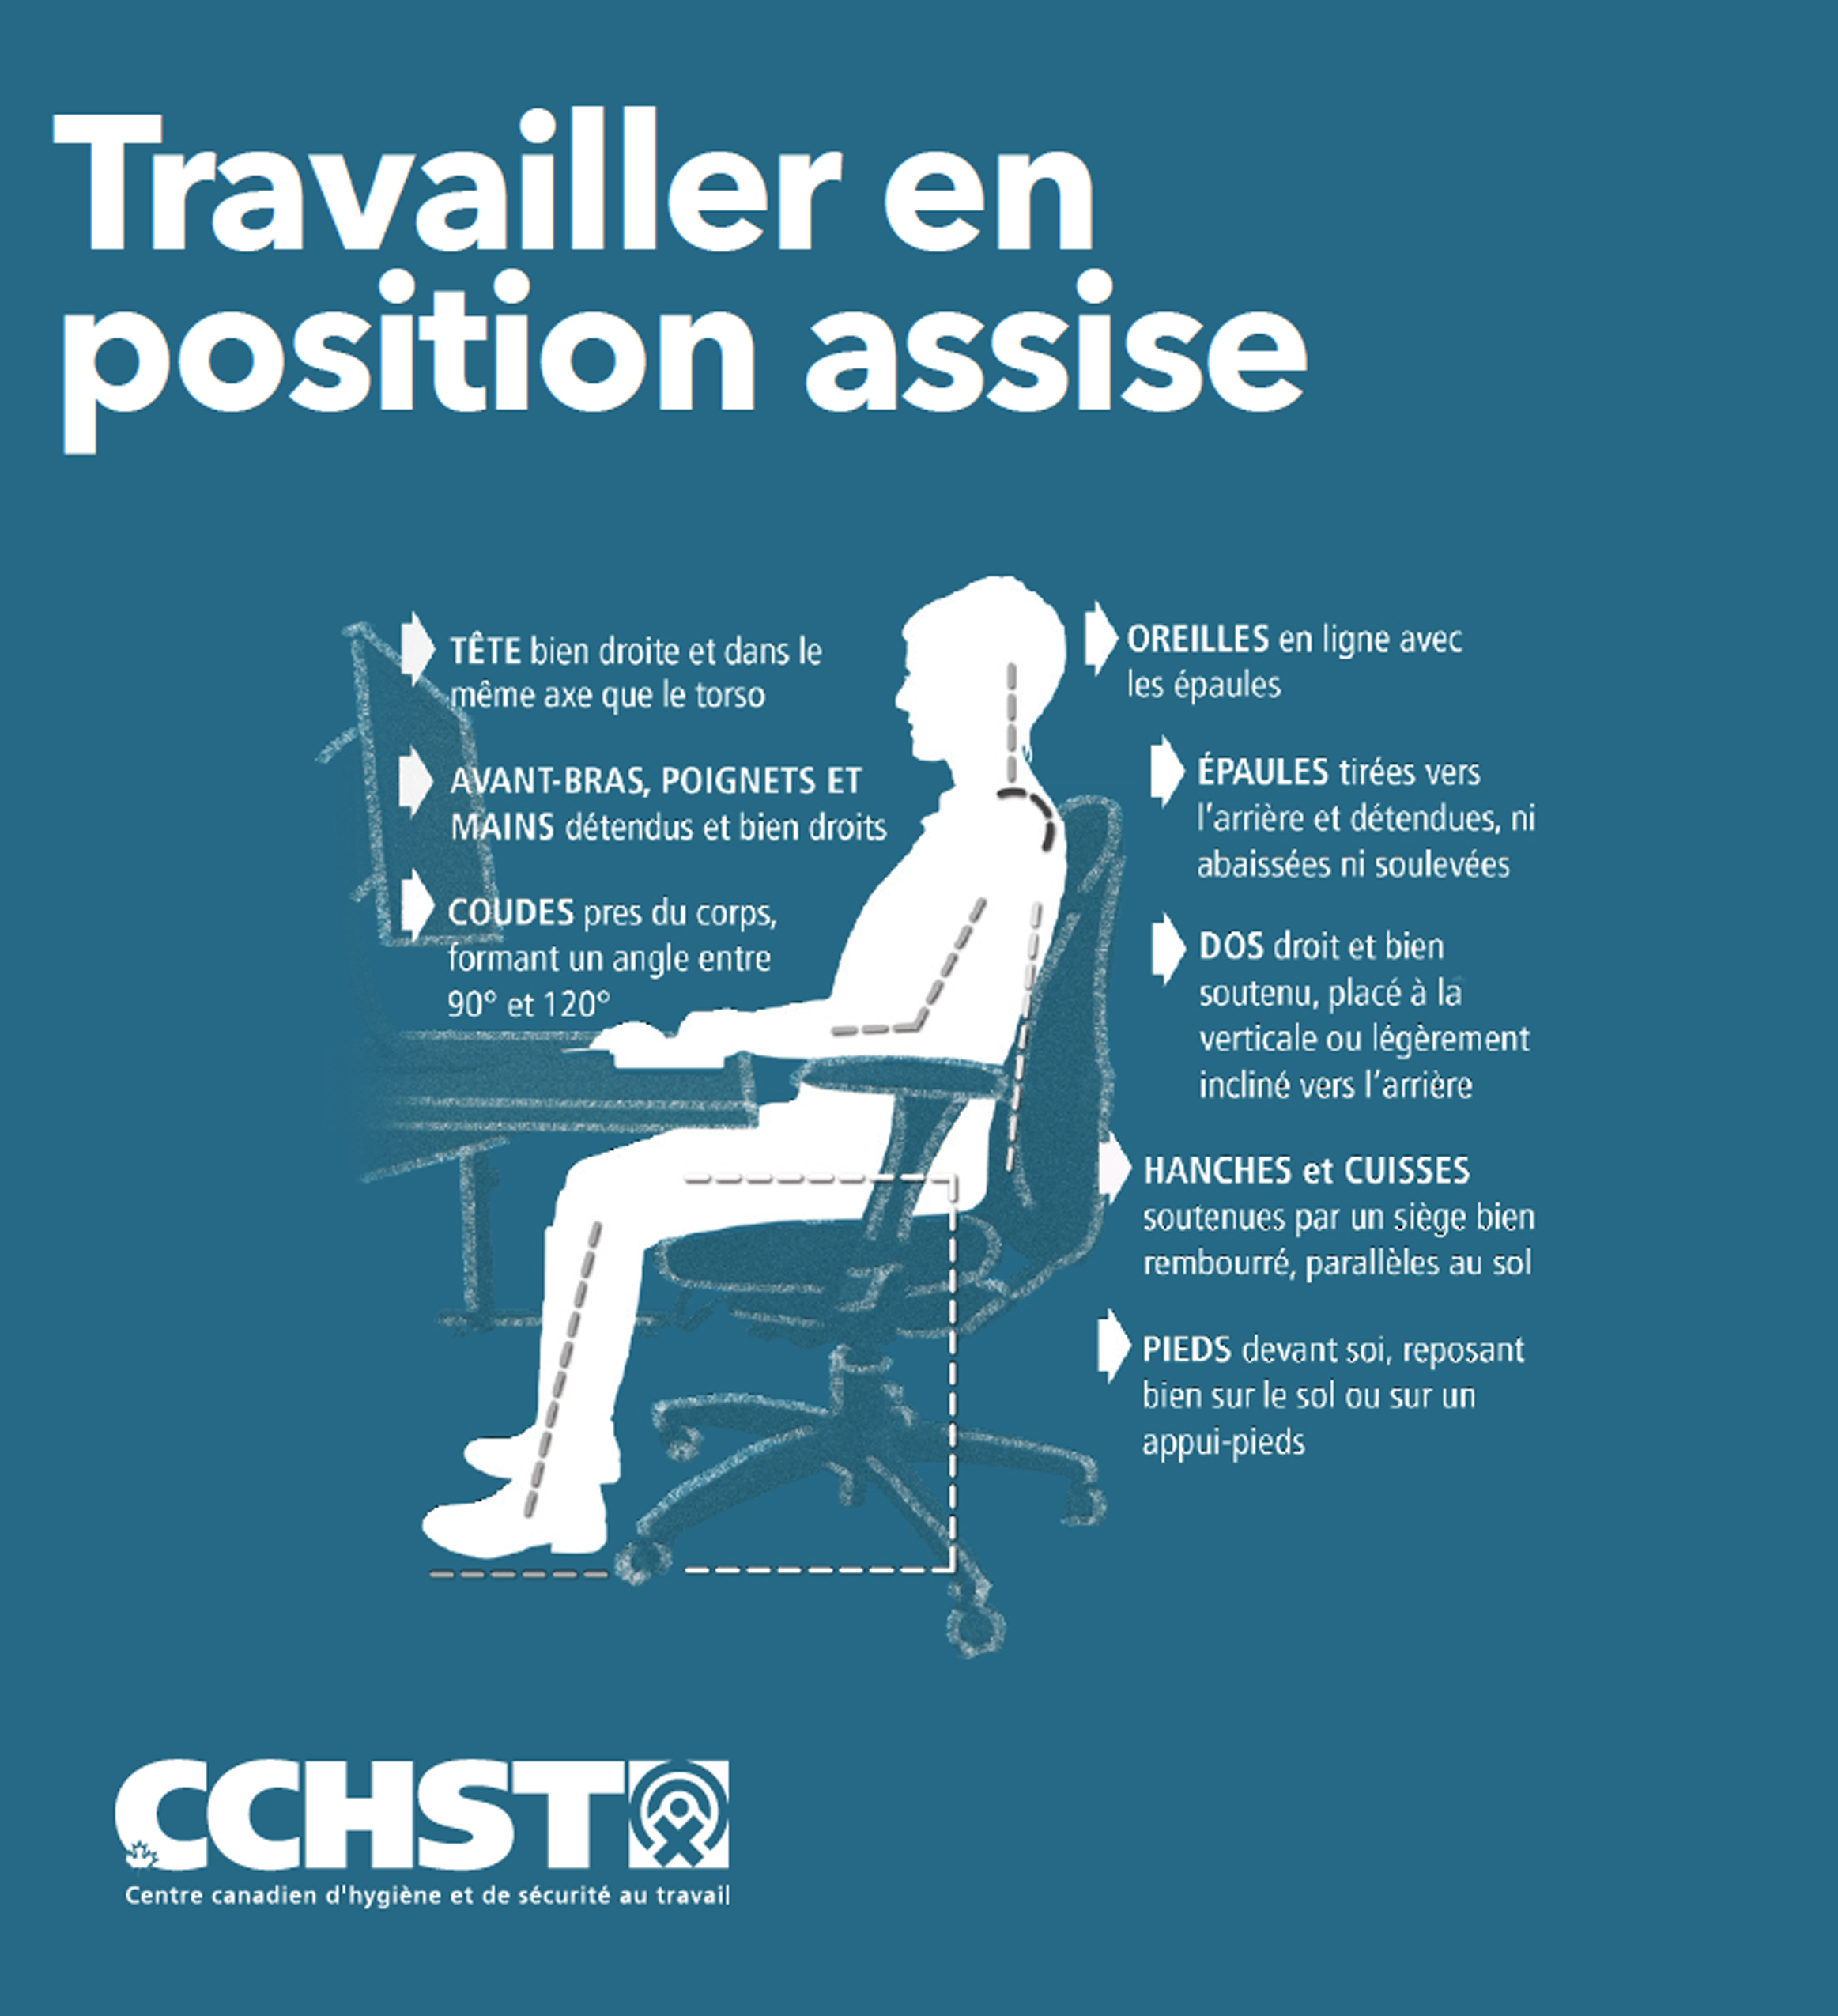 Travailler en position assise collage